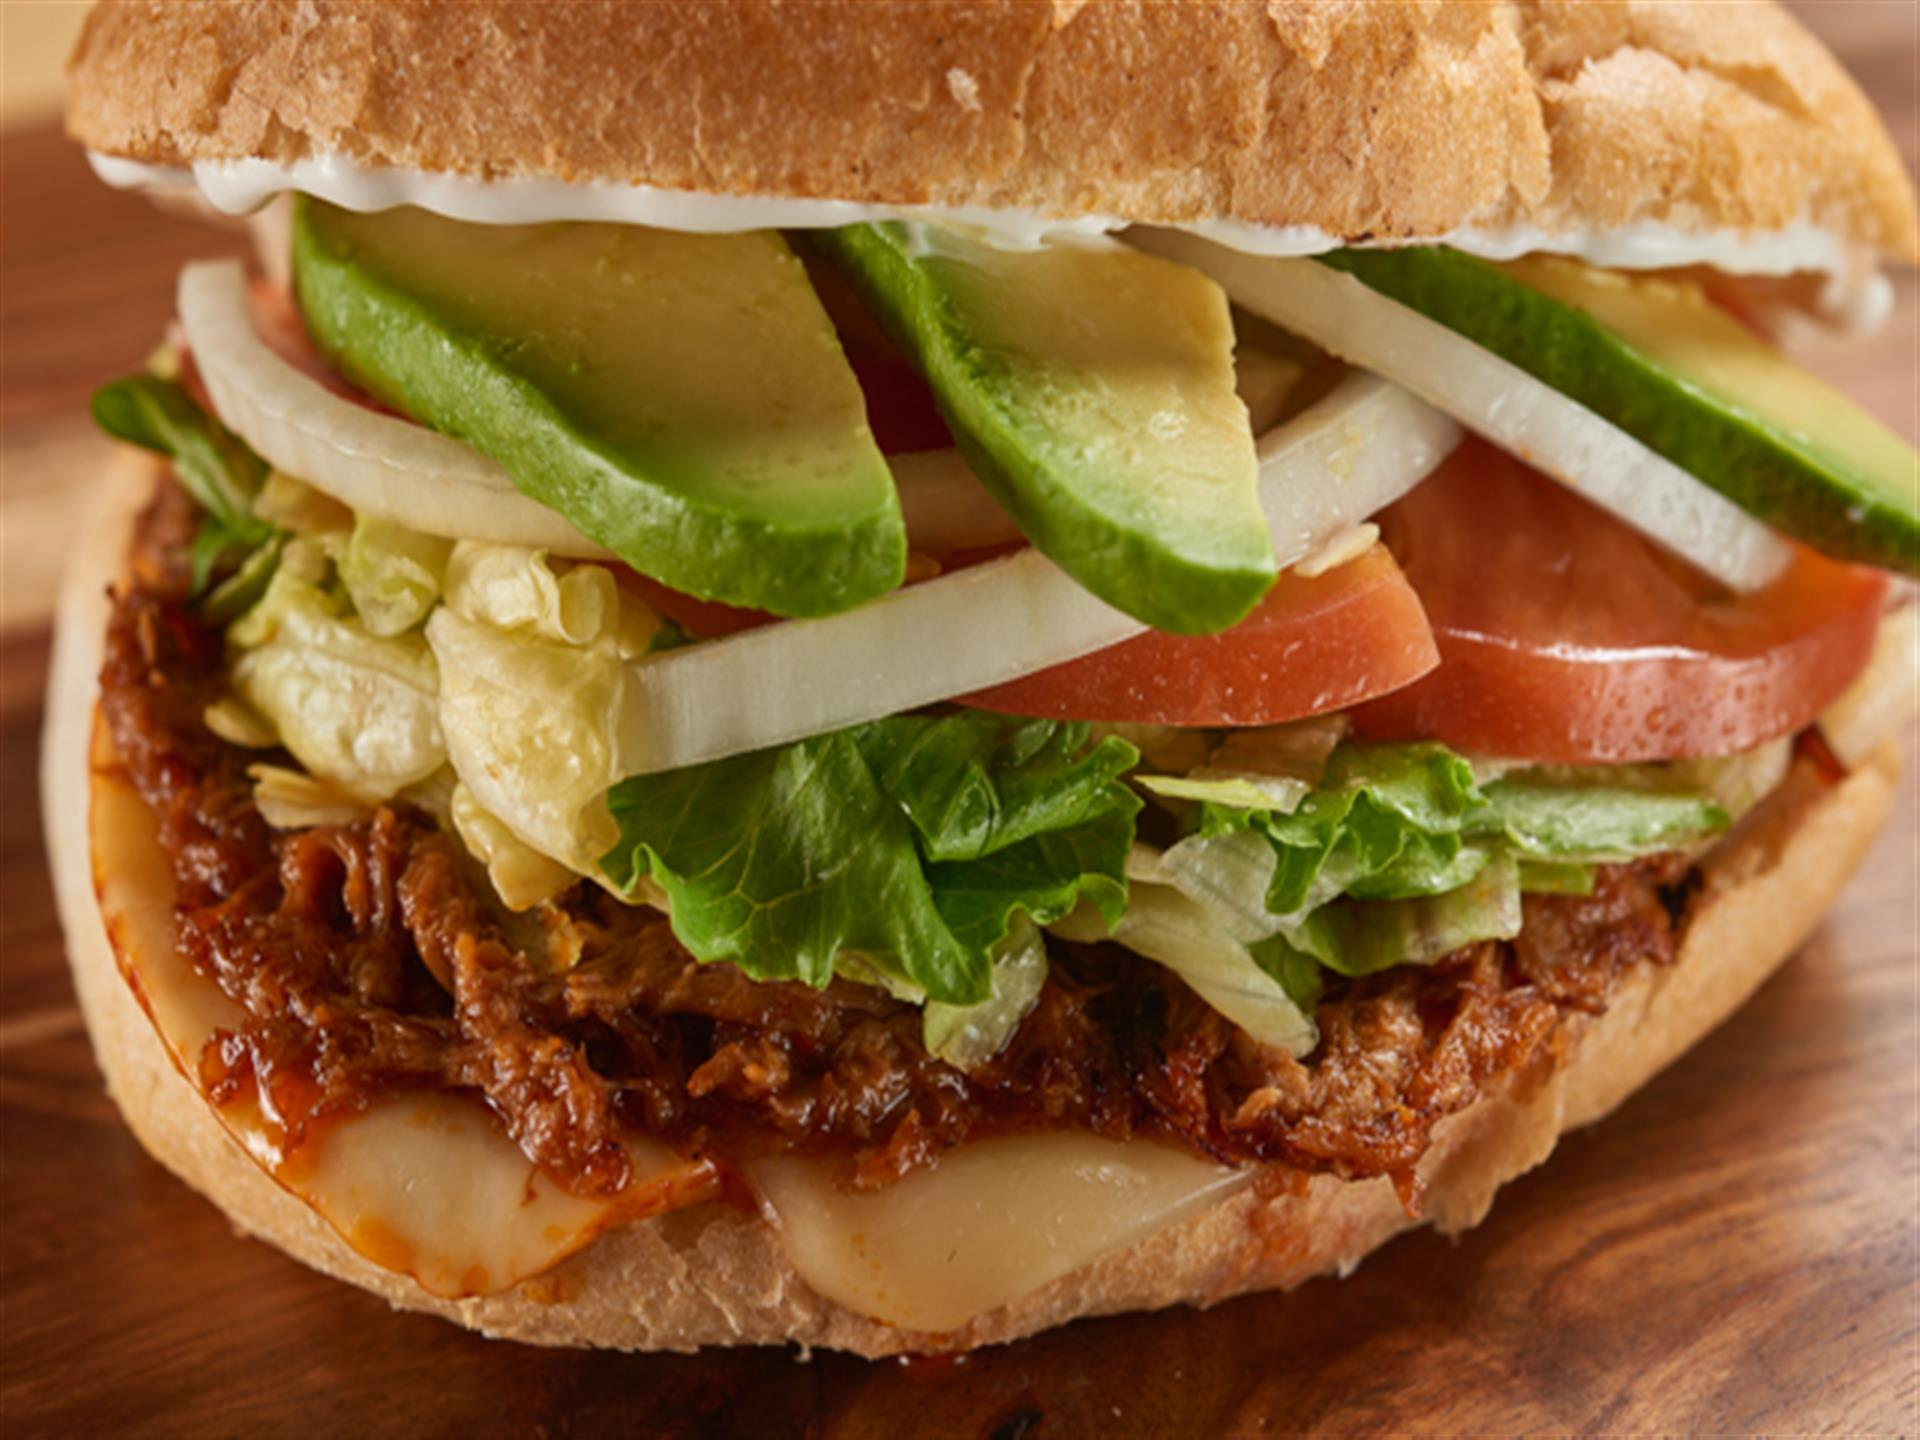 Mexican sandwich with pork, lettuce, tomatoes, onions, avocados